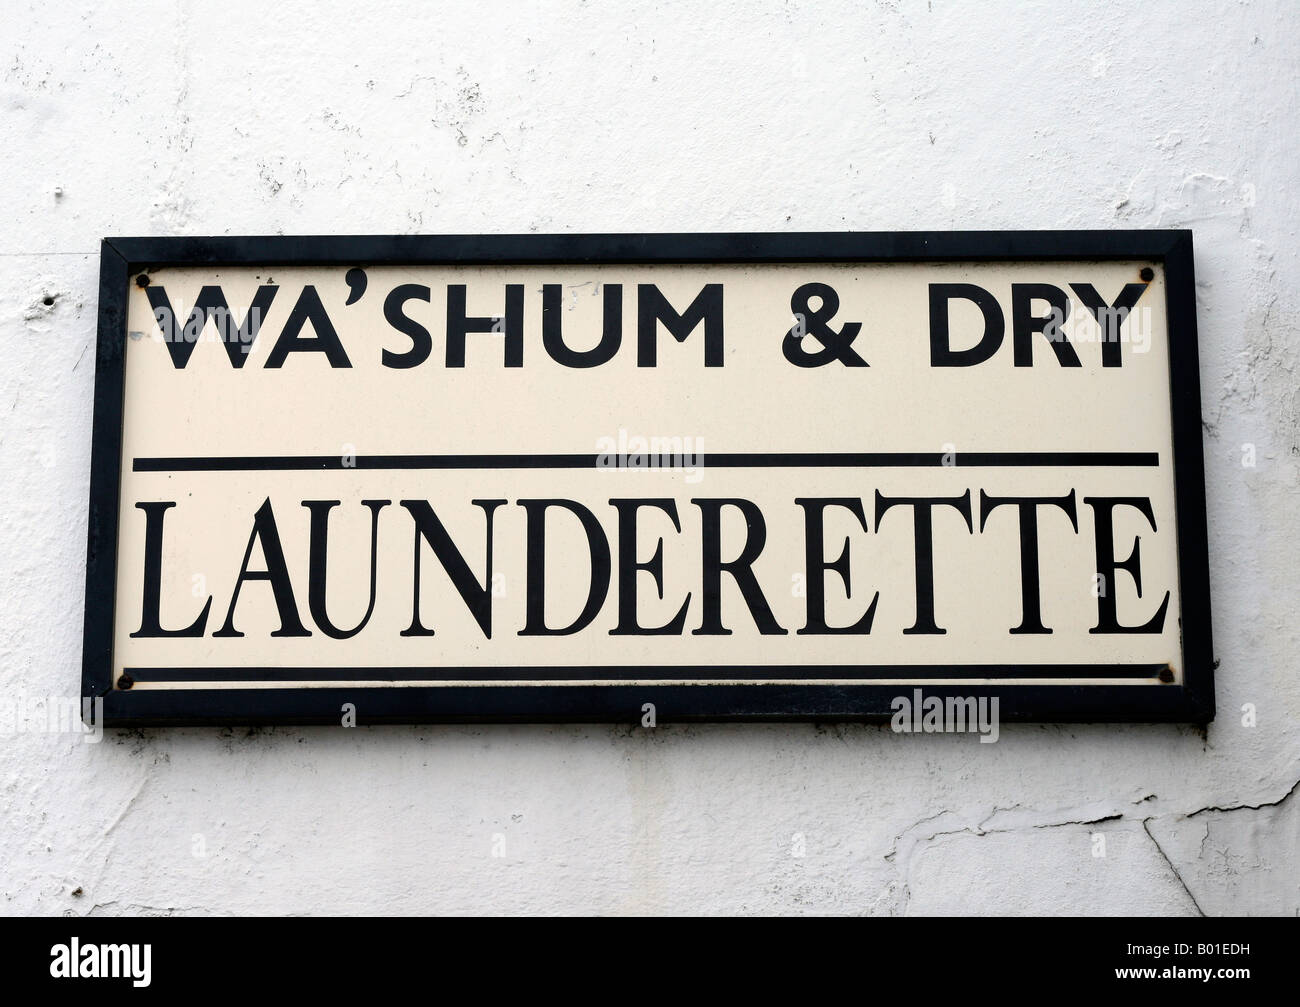 Vintage Launderette Sign Launderette Sign Stock Photo Royalty Free Image 17243677  Alamy